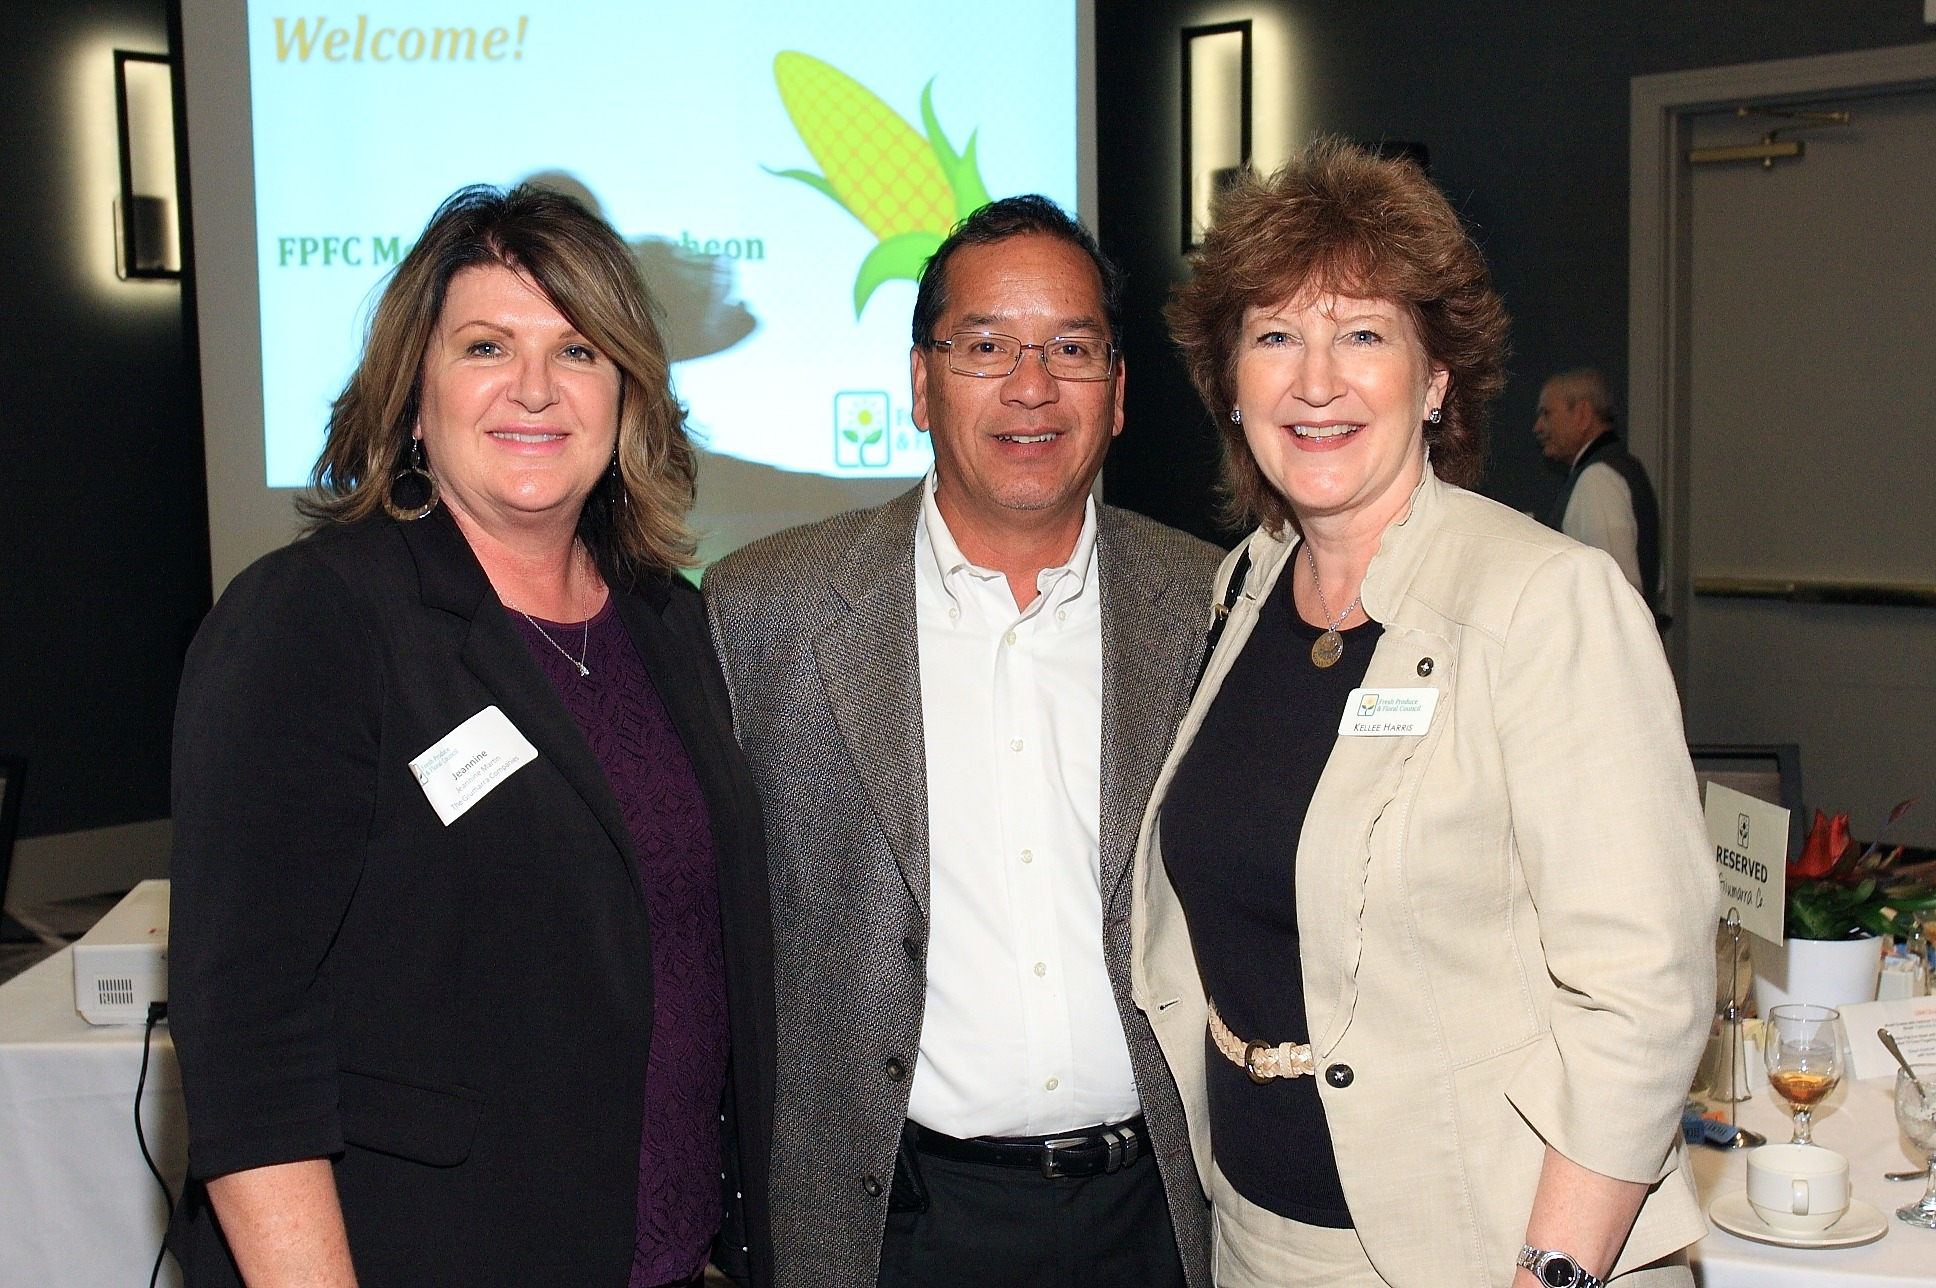 Rick Cruz of Pavilions with Jeannine Martin and Kellee Harris of The Giumarra Companies